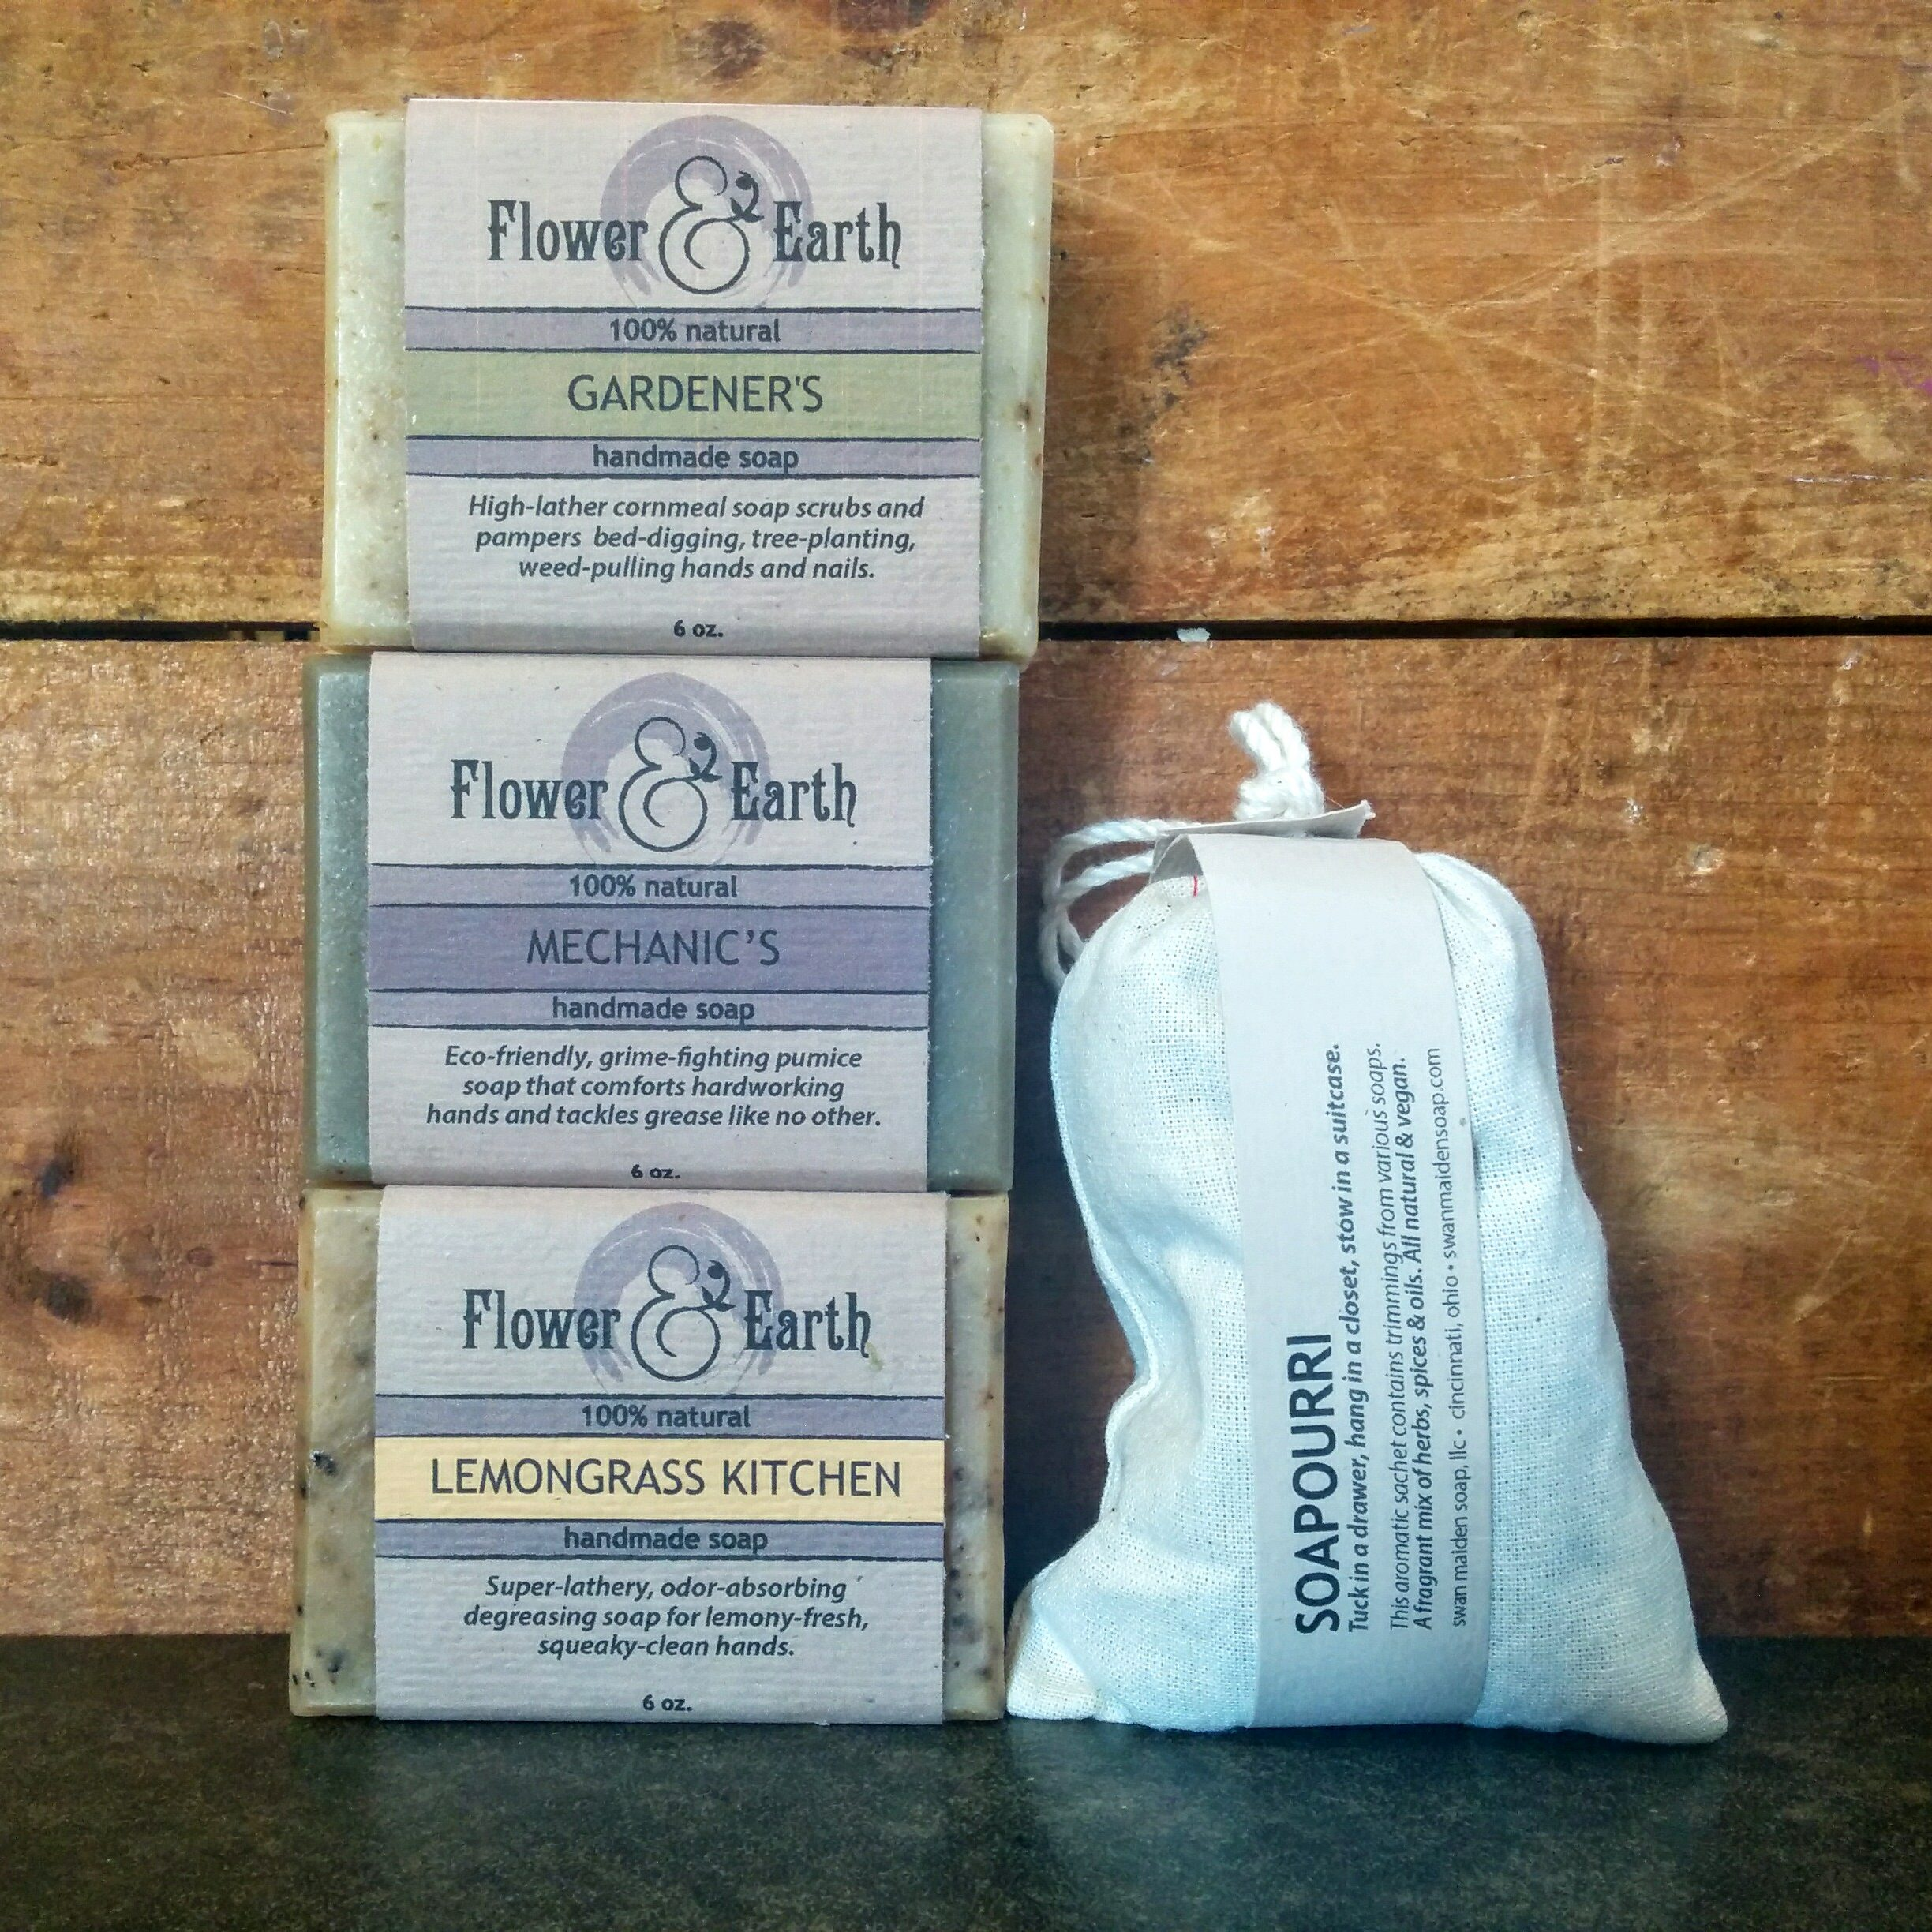 Our Around The House Soap Set, featuring Handmade Gardener's Soap with Locally Sourced Cornmeal.